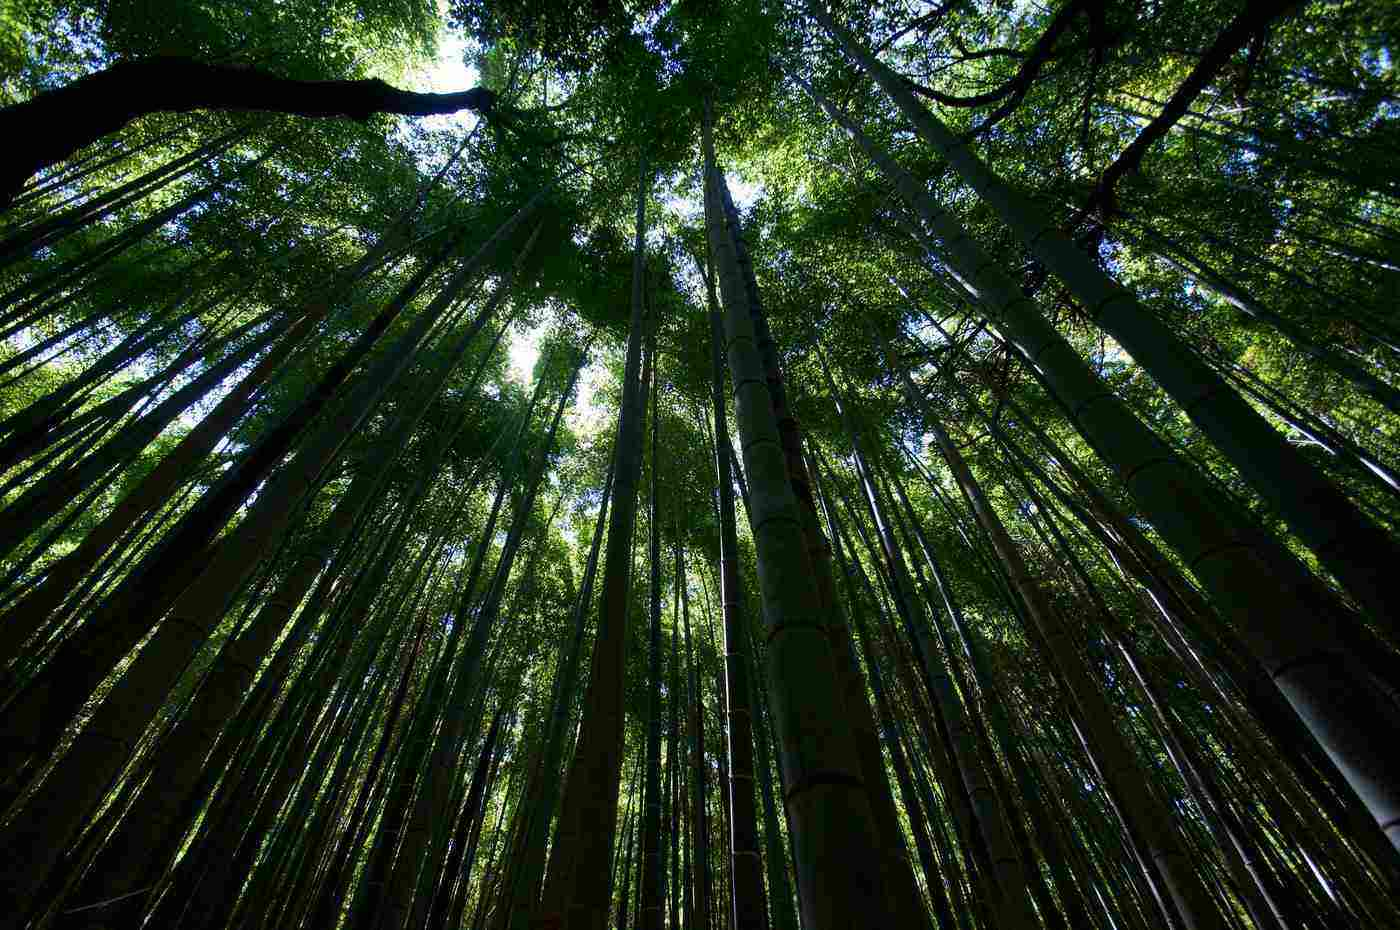 arashiyama bamboo grove - 15 most beautiful places on earth